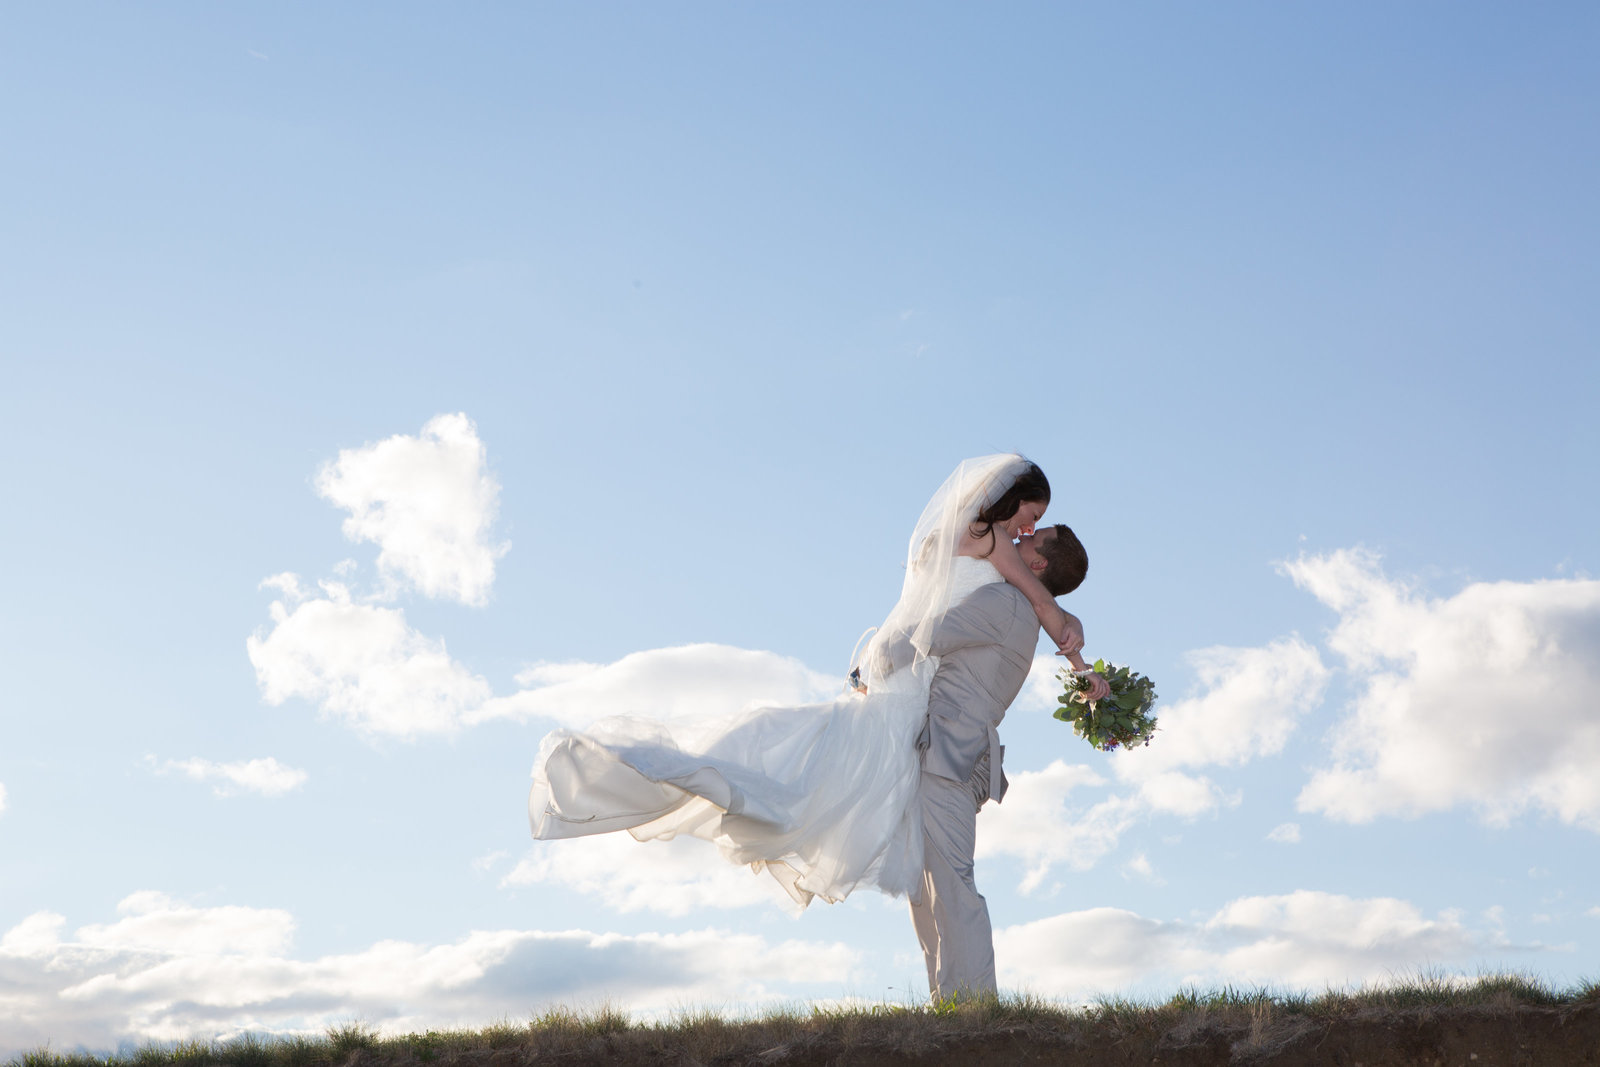 Groom lifting bride into air during wedding photo shoot